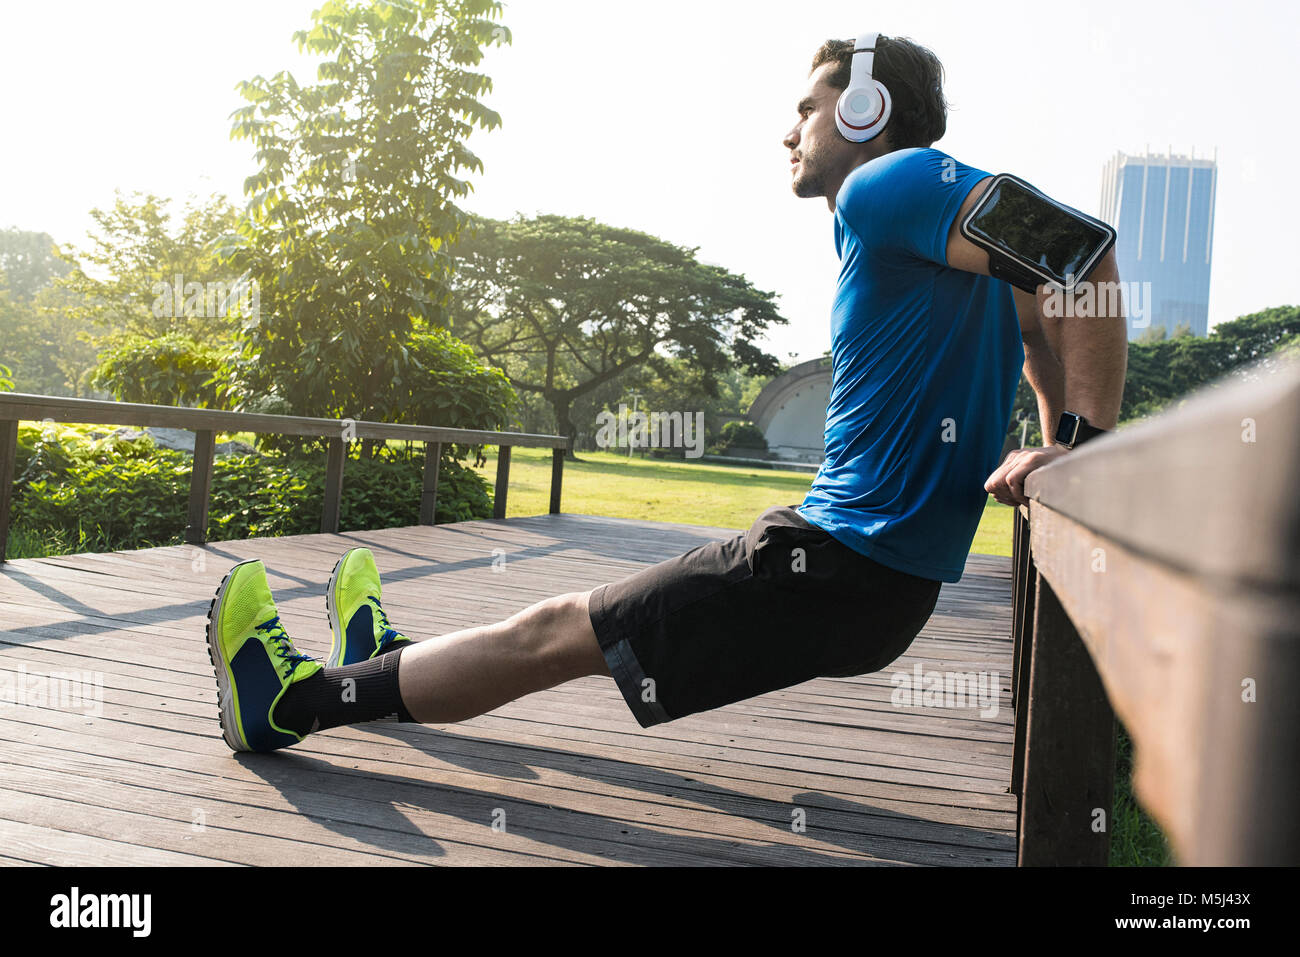 Runner with headphones doing push-ups in urban park - Stock Image